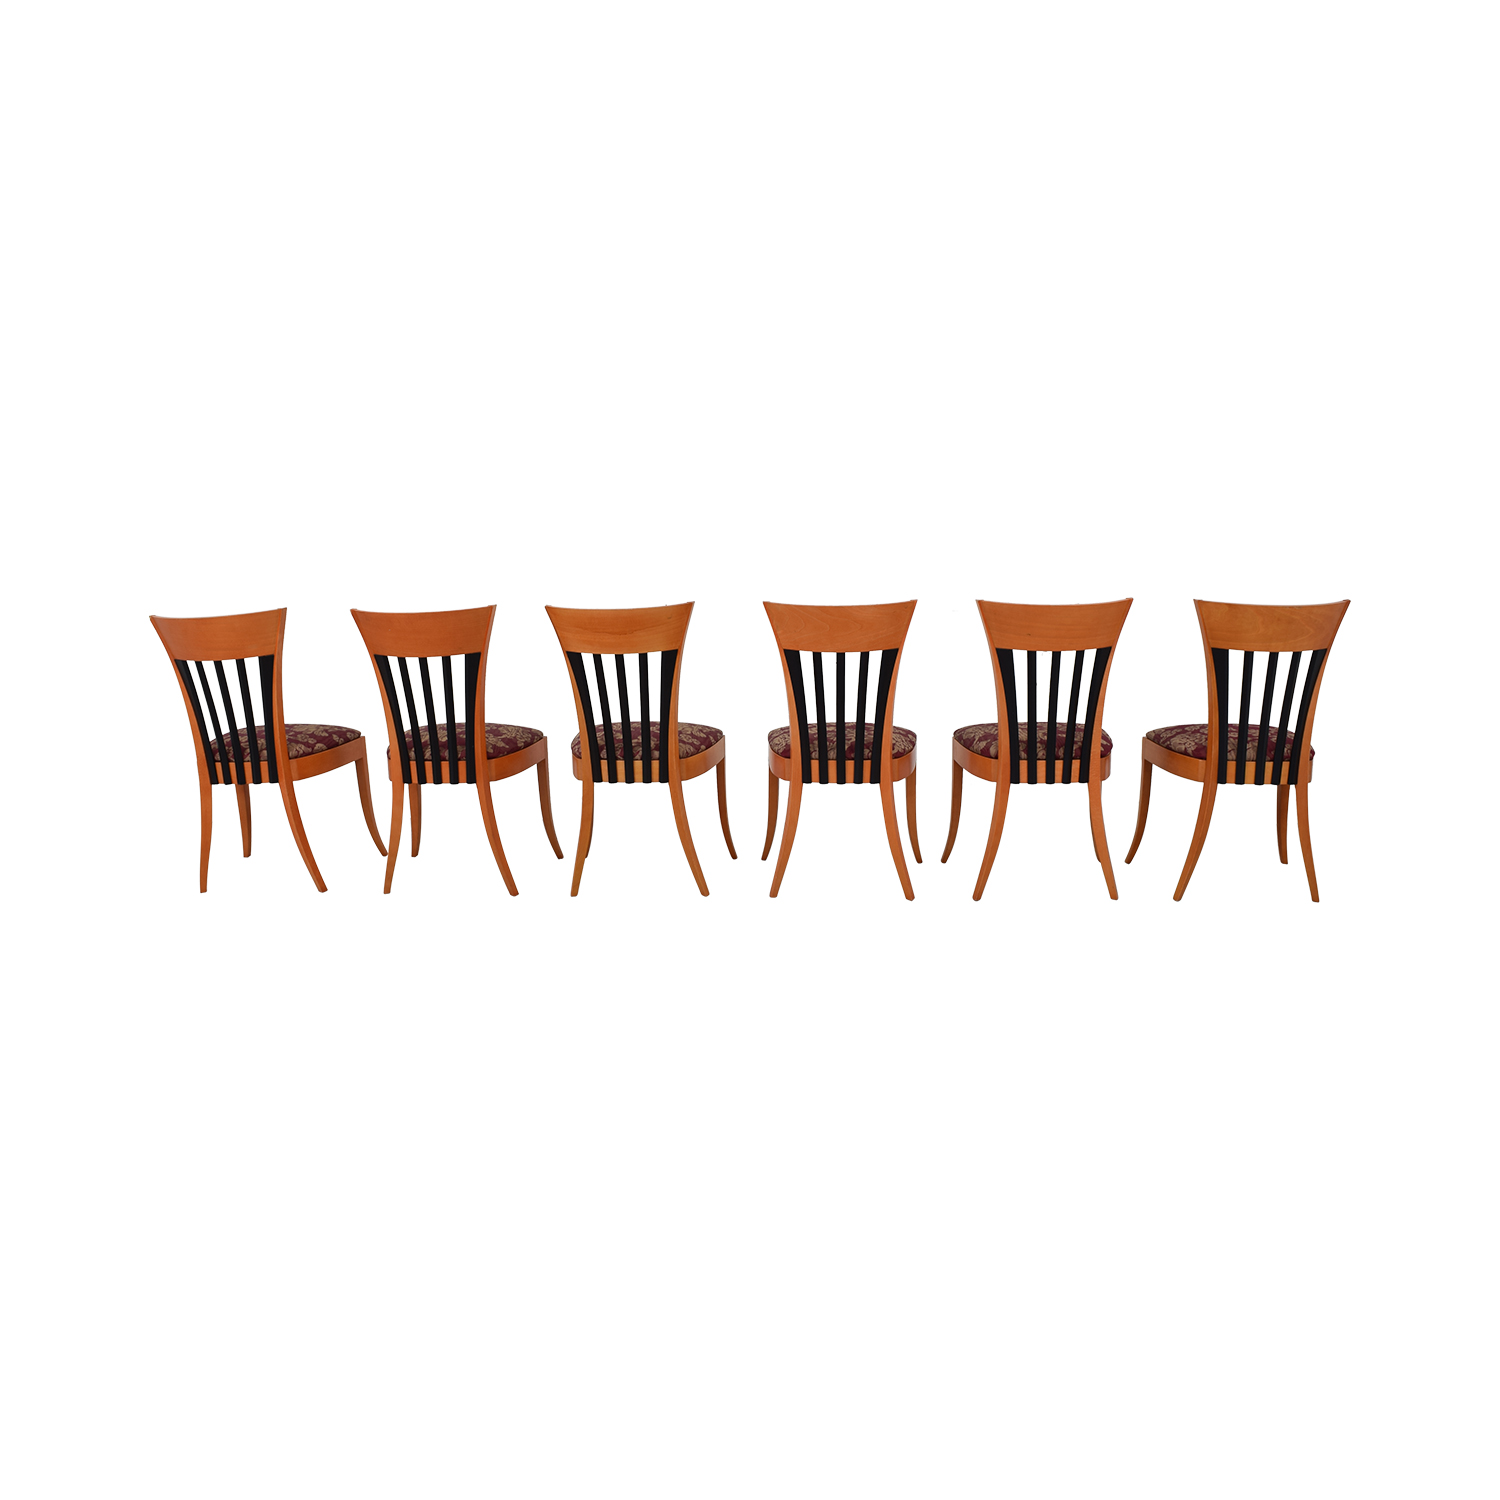 Pace Vintage Dining Chairs dimensions